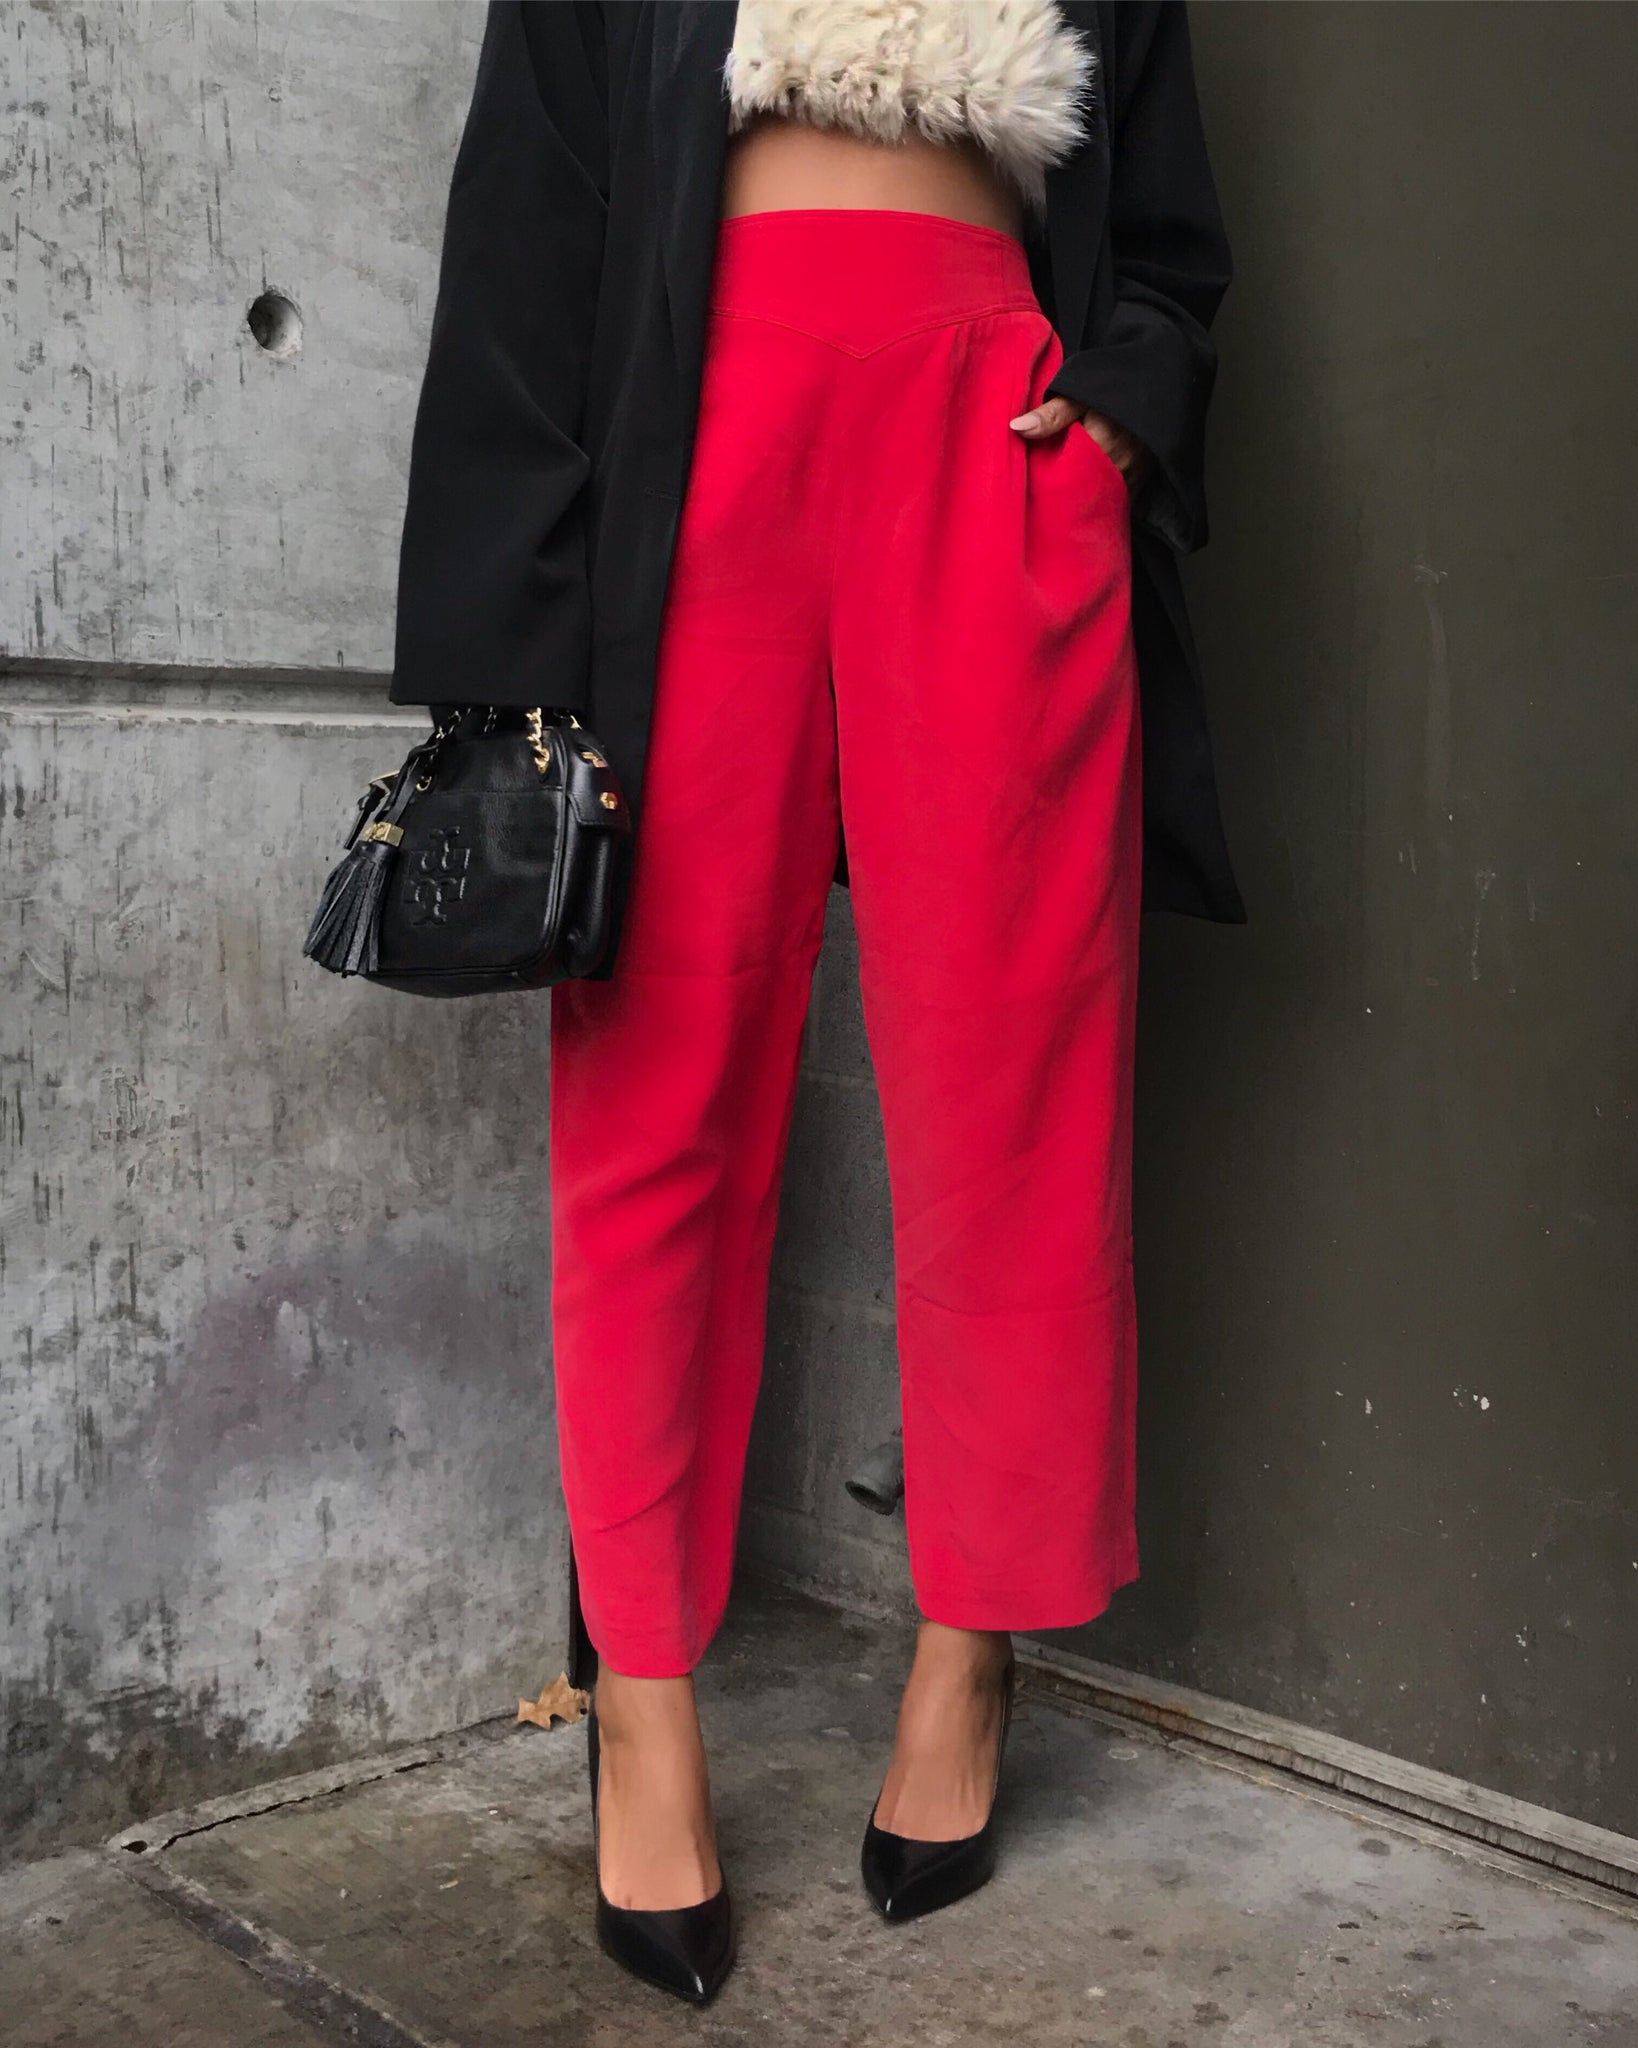 100% Silk Candy Apple Red Trousers